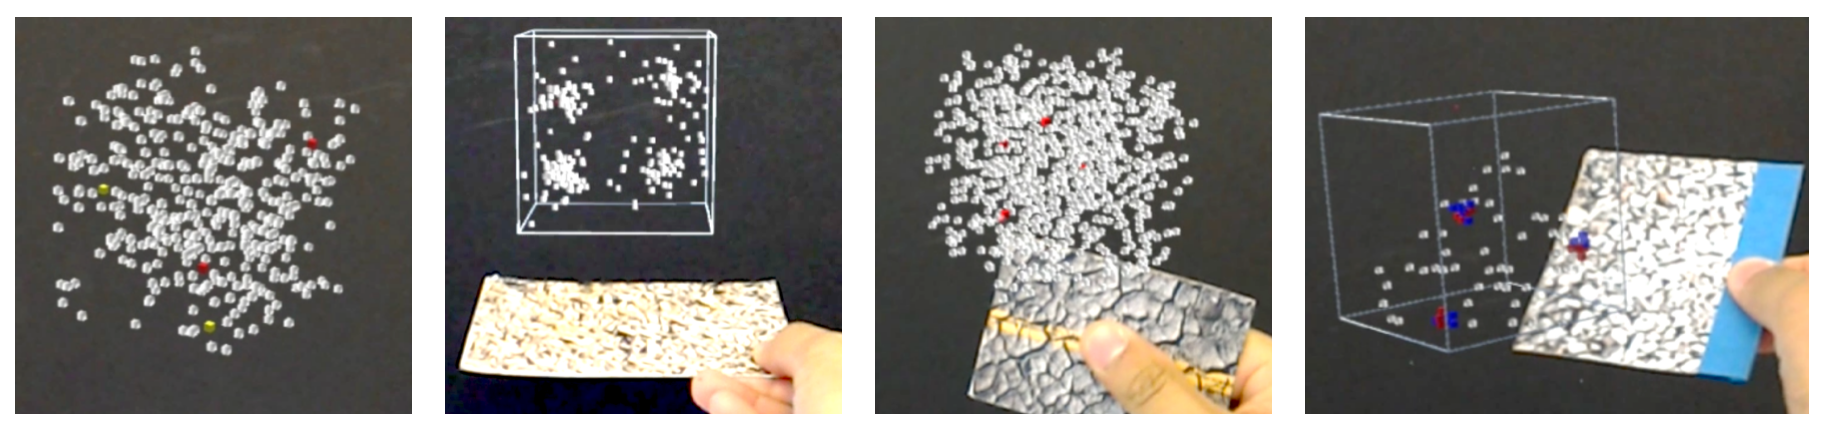 The Hologram in My Hand: How Effective is Interactive Exploration of 3D Visualizations in Immersive Tangible Augmented Reality?